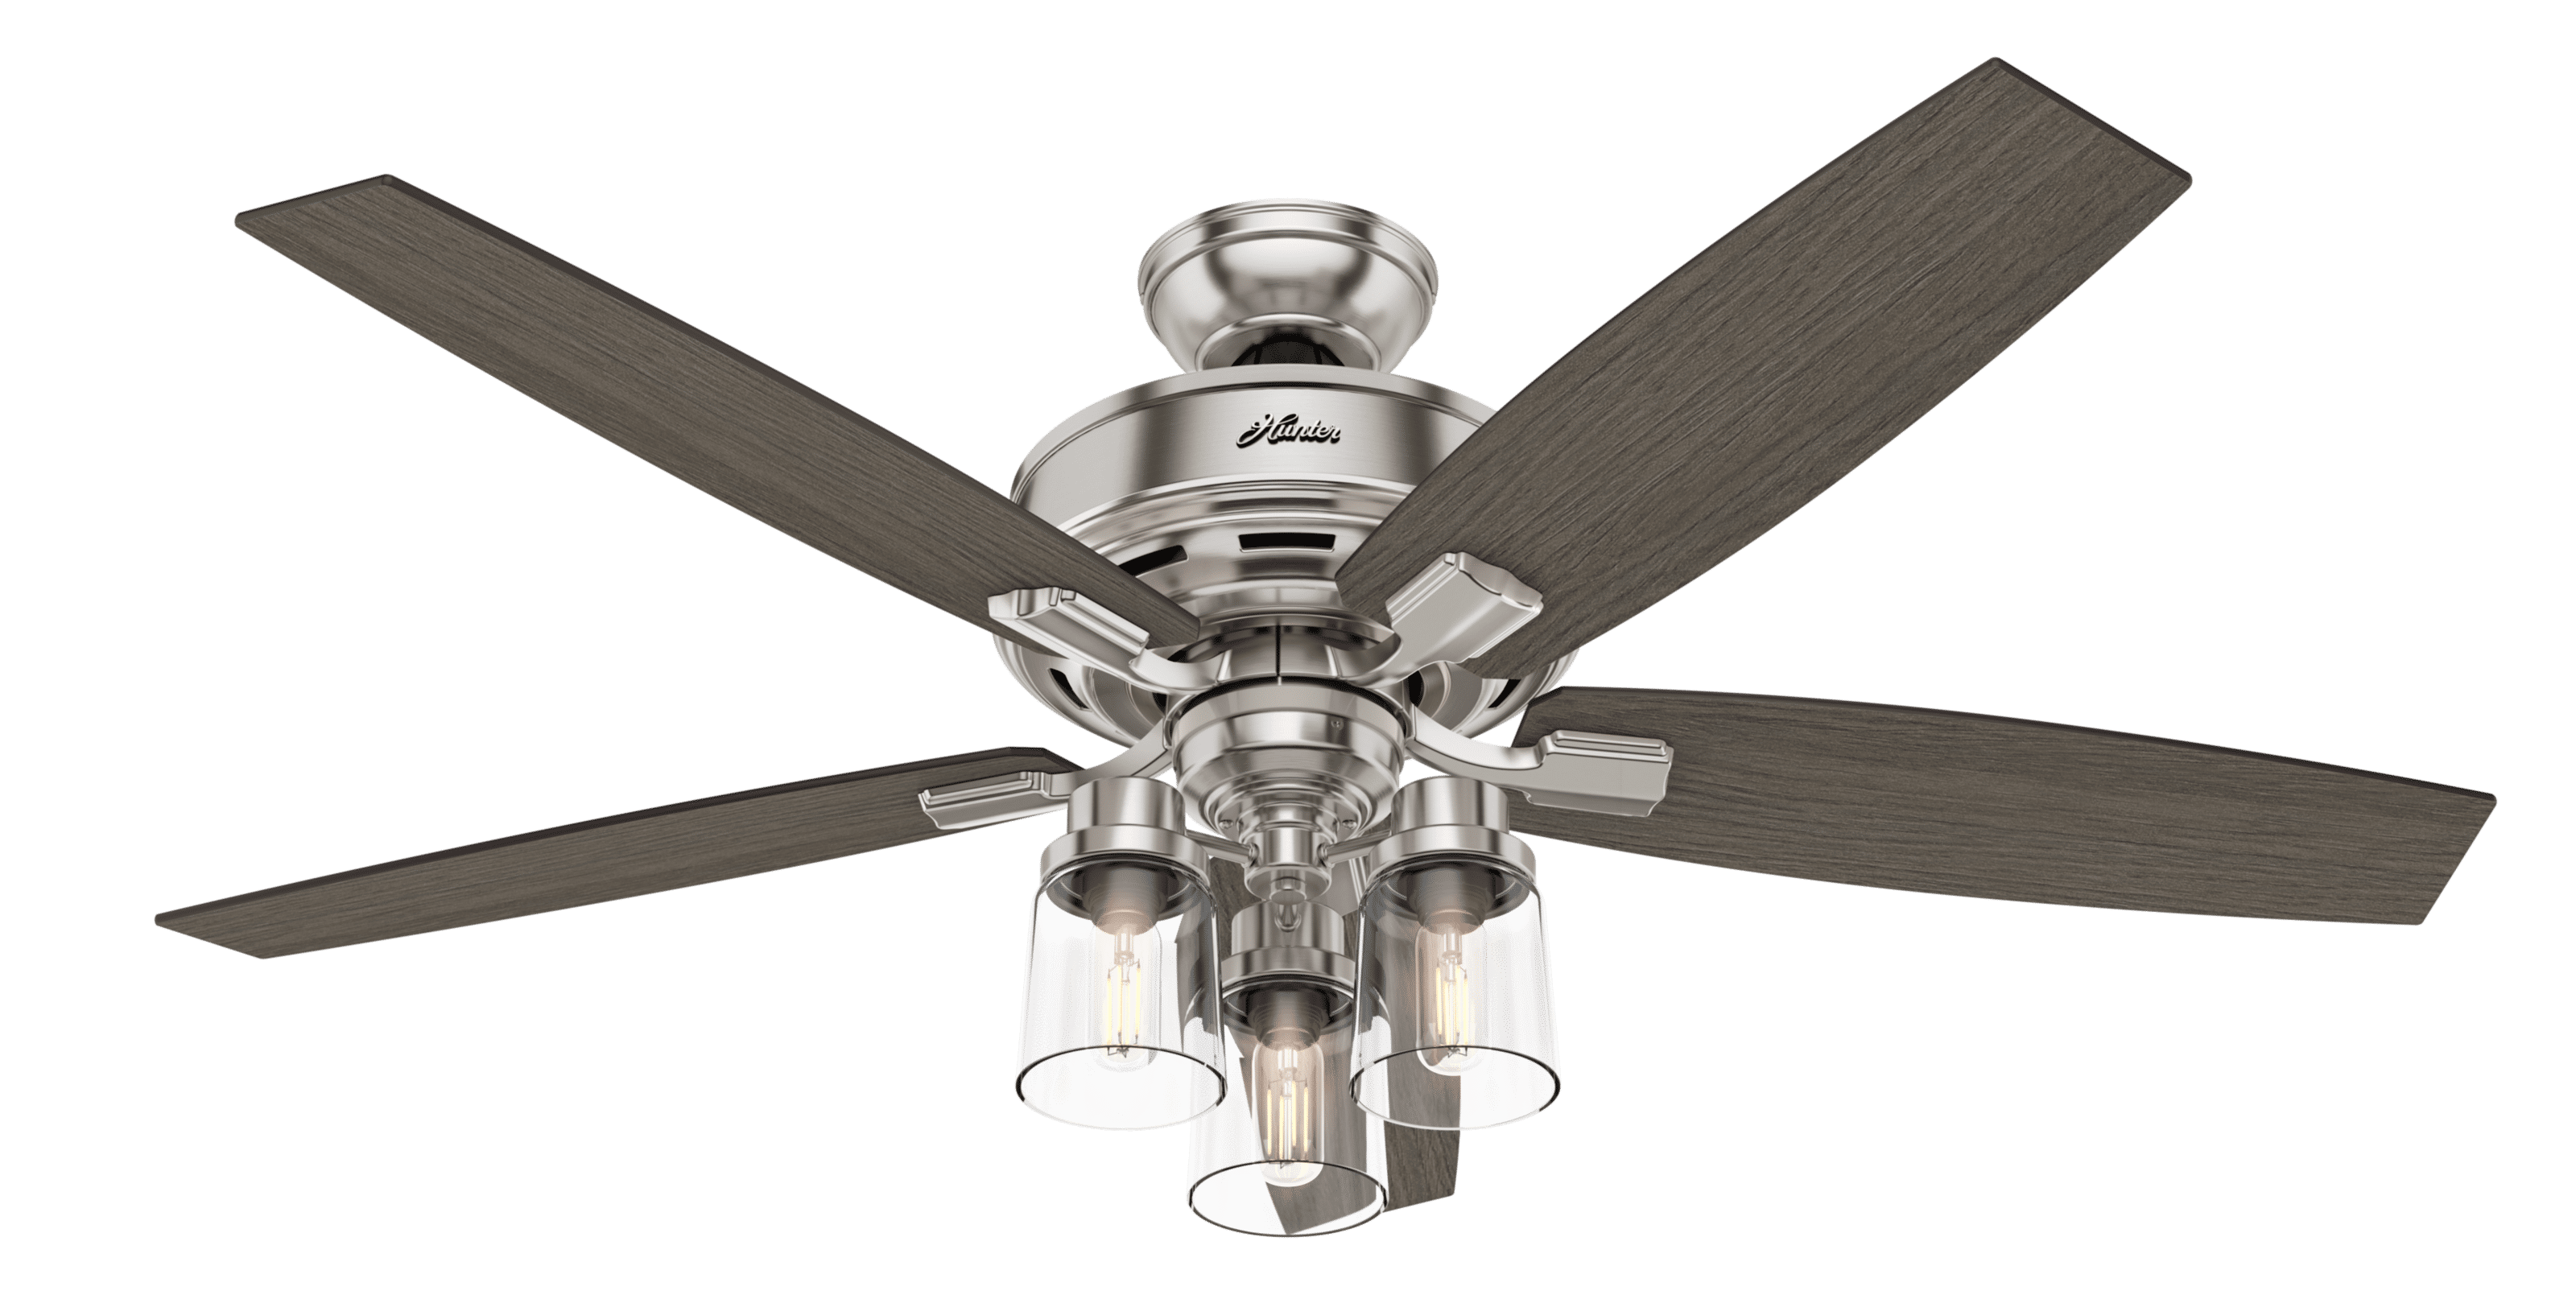 52 Quot Hunter Bennett With 3 Light Brushed Nickel Ceiling Fan With Led Light Kit And Remote Control